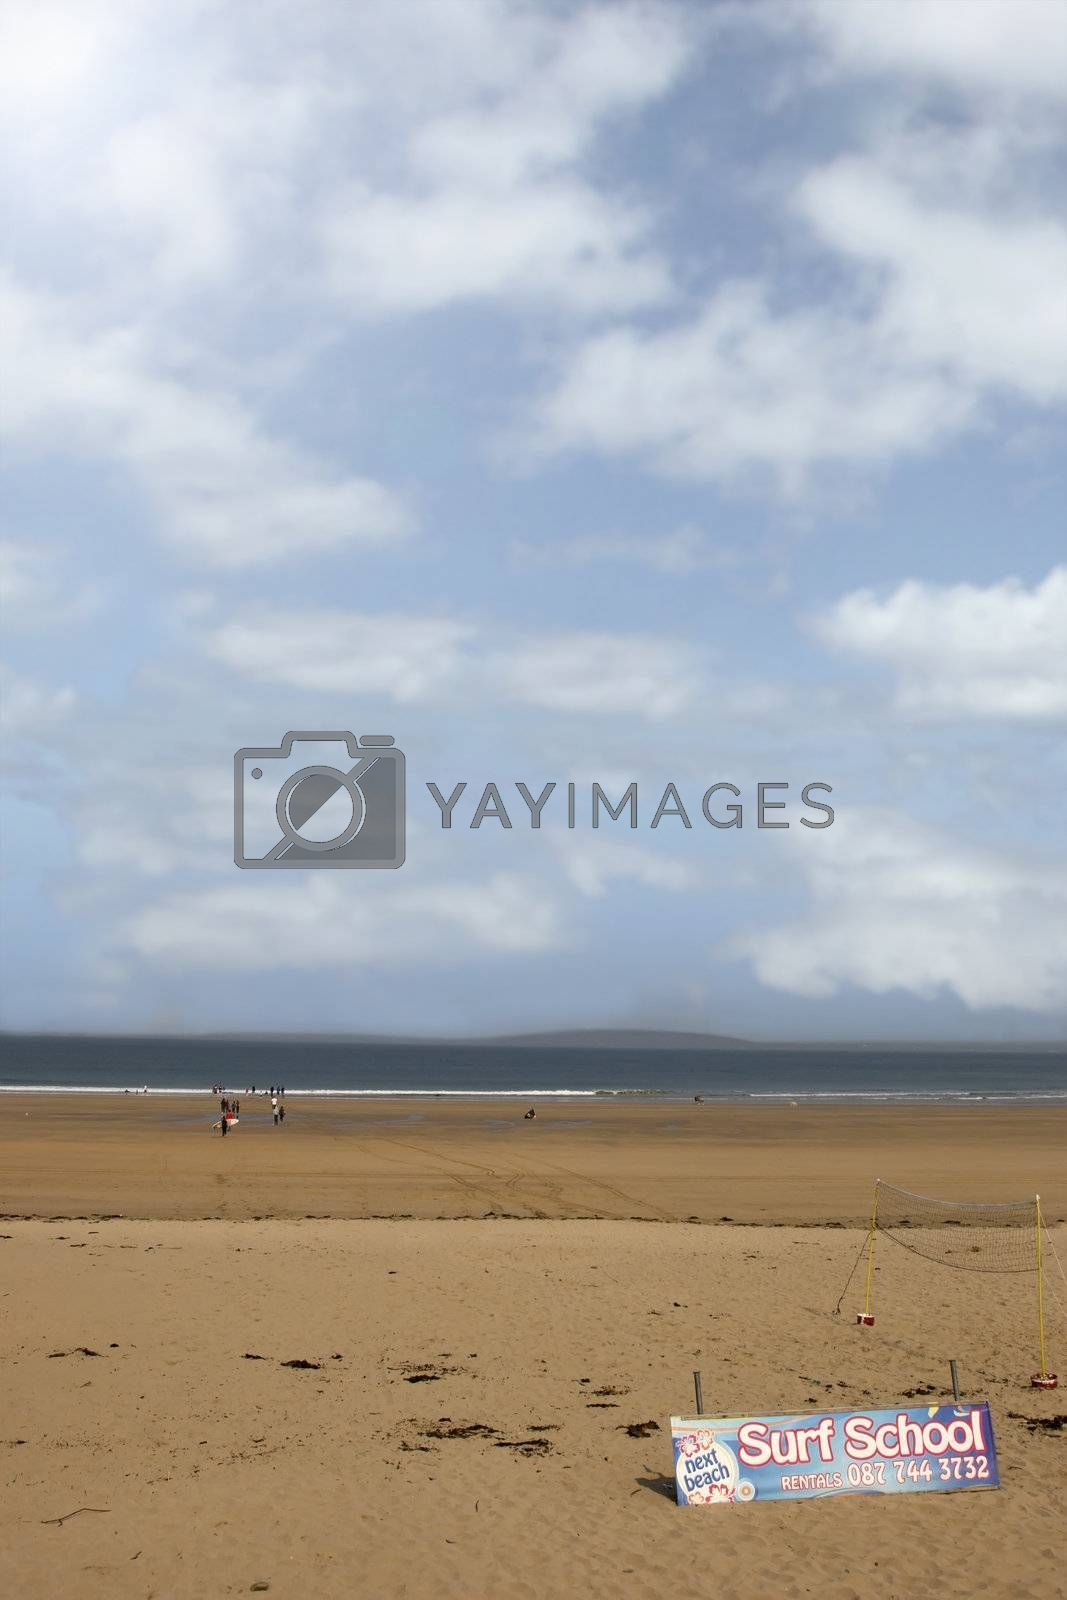 sandy beach with children getting ready to be taught surfing in ballybunion county Kerry Ireland in black and white